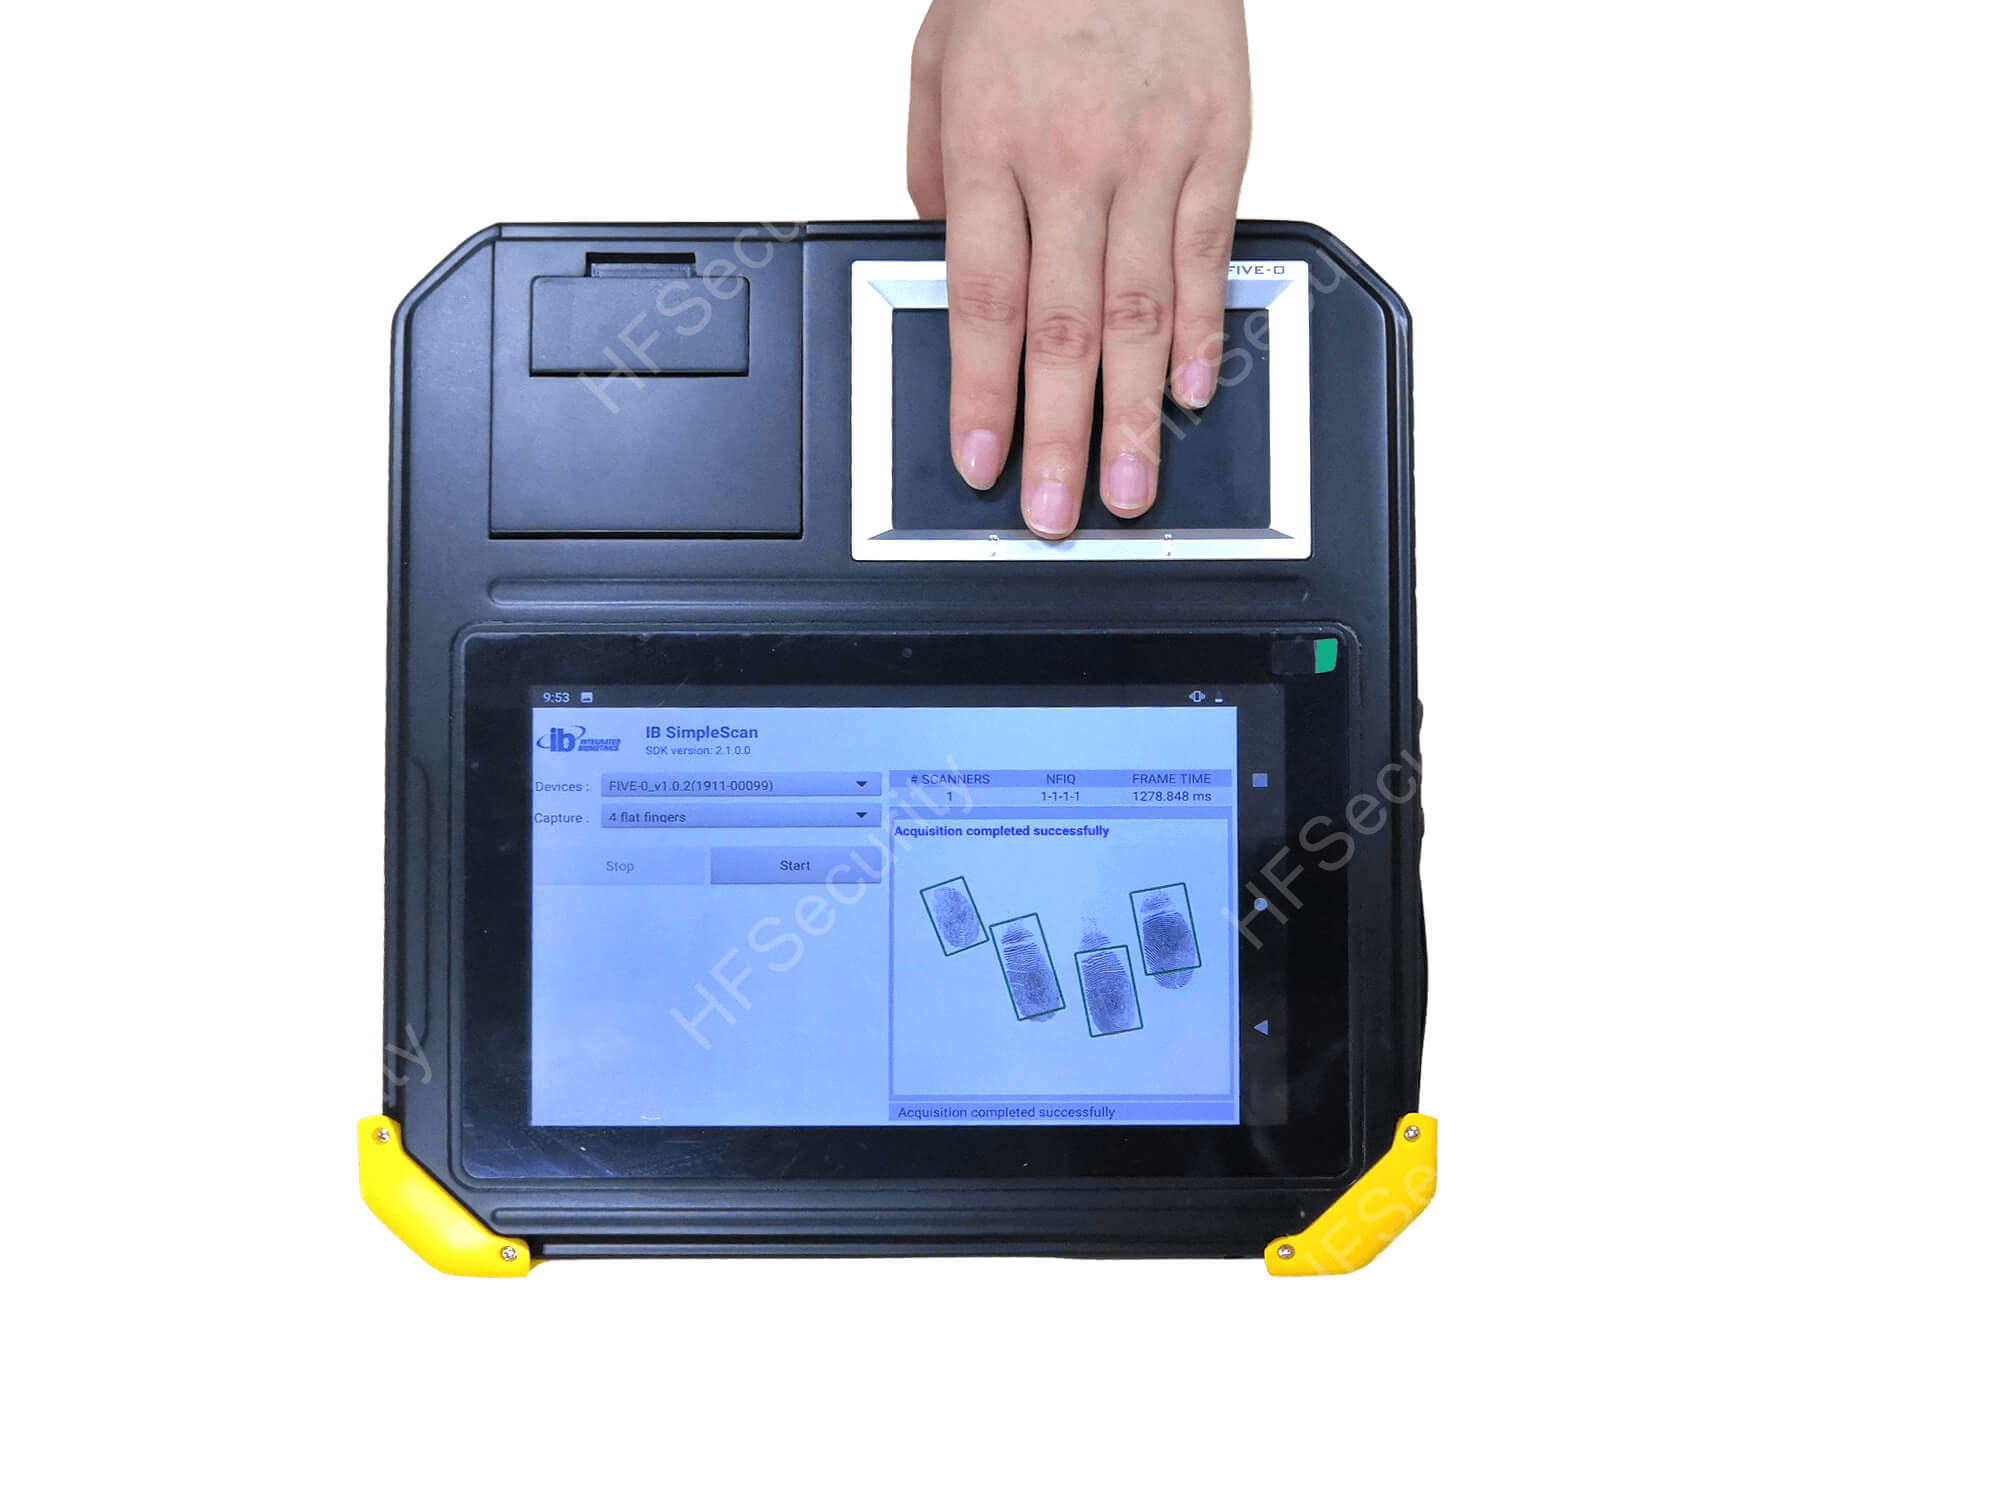 8 inch biometric tablet with FAP50